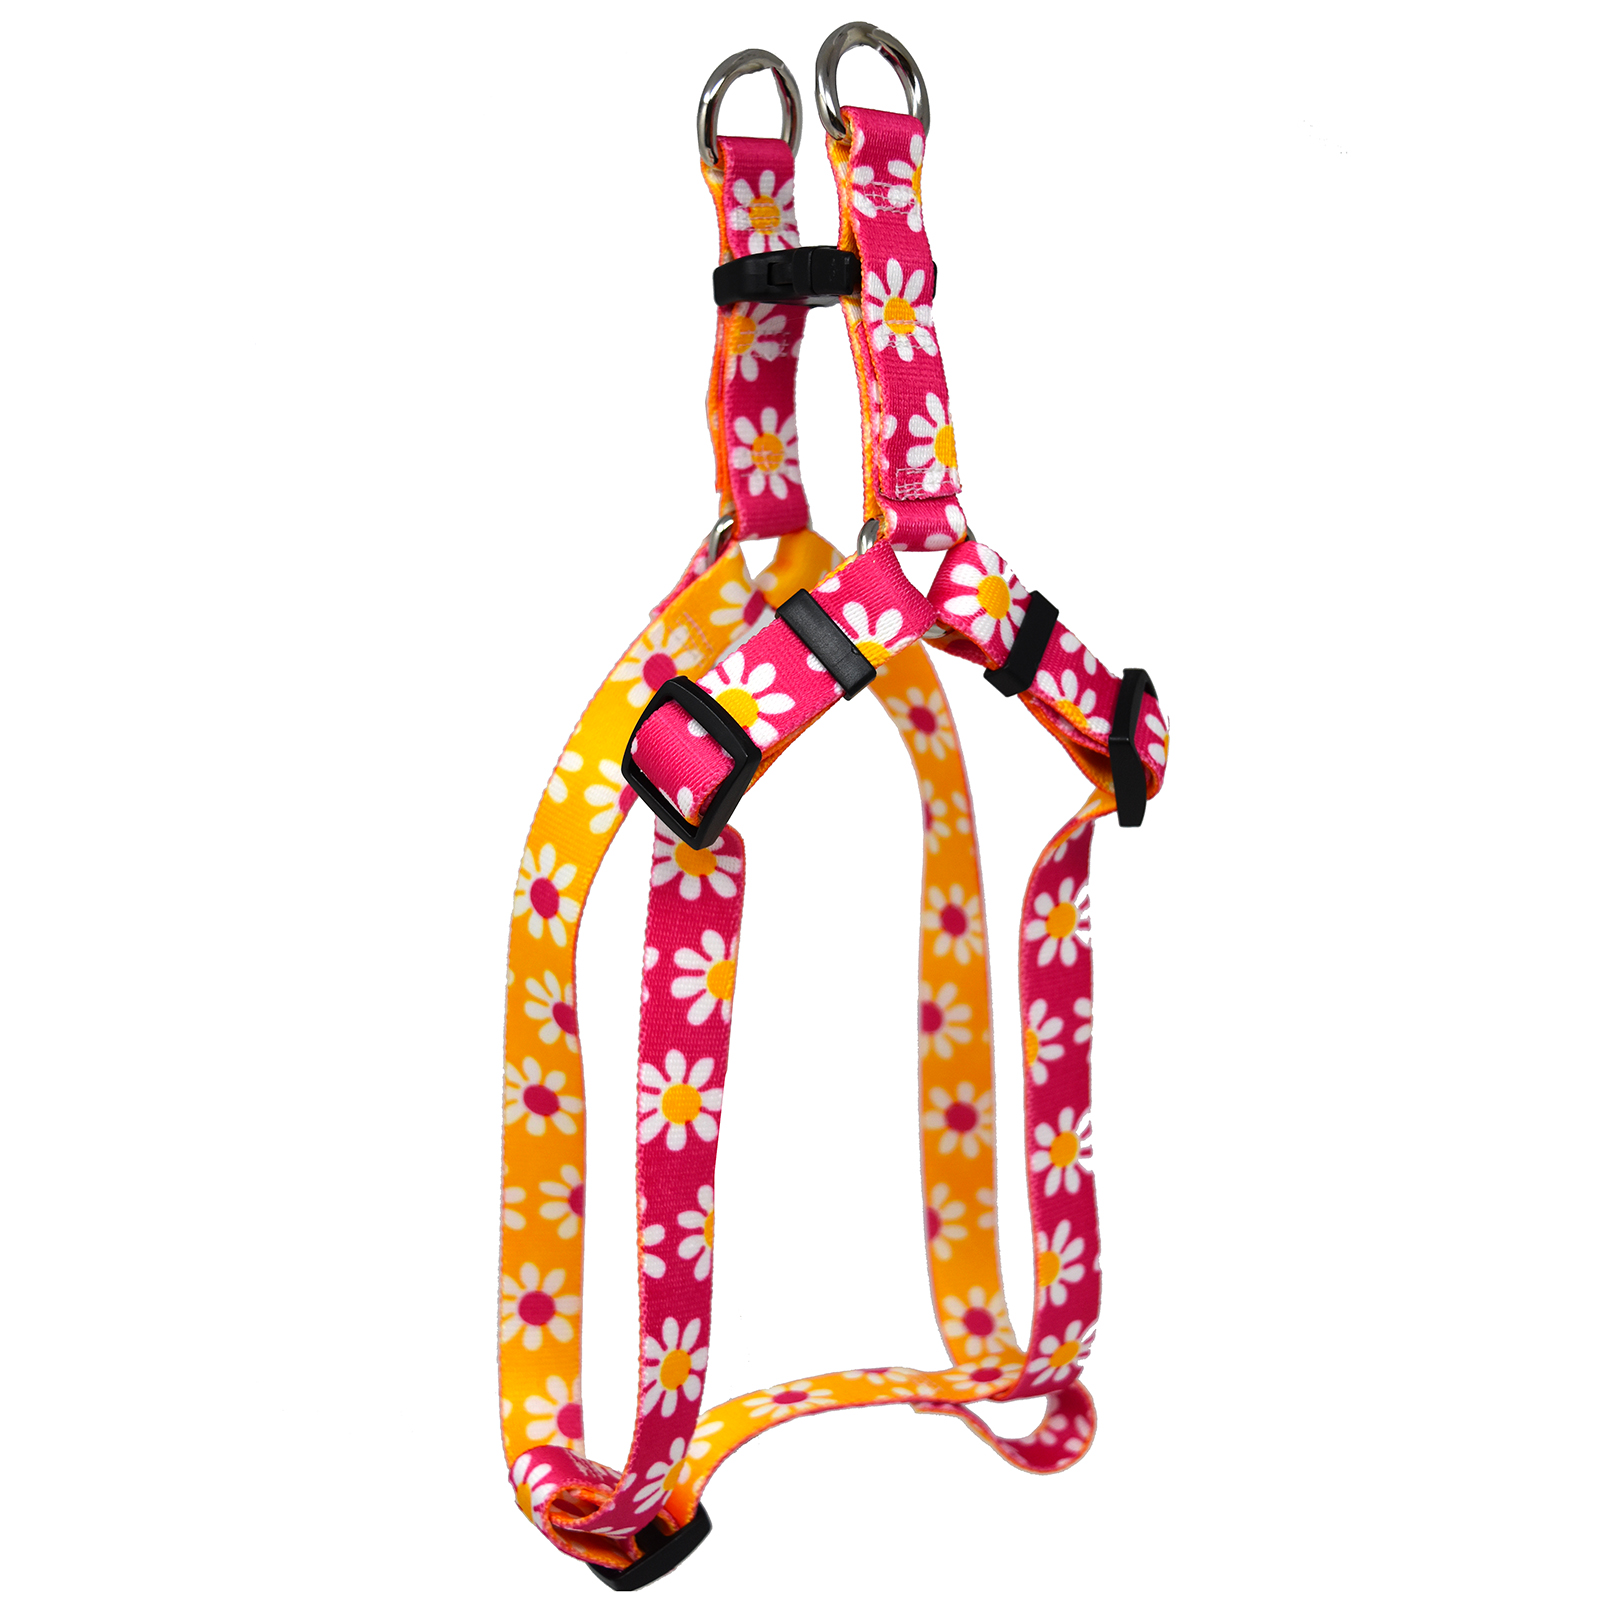 Magenta & Goldenrod Daisy Step-In Harness